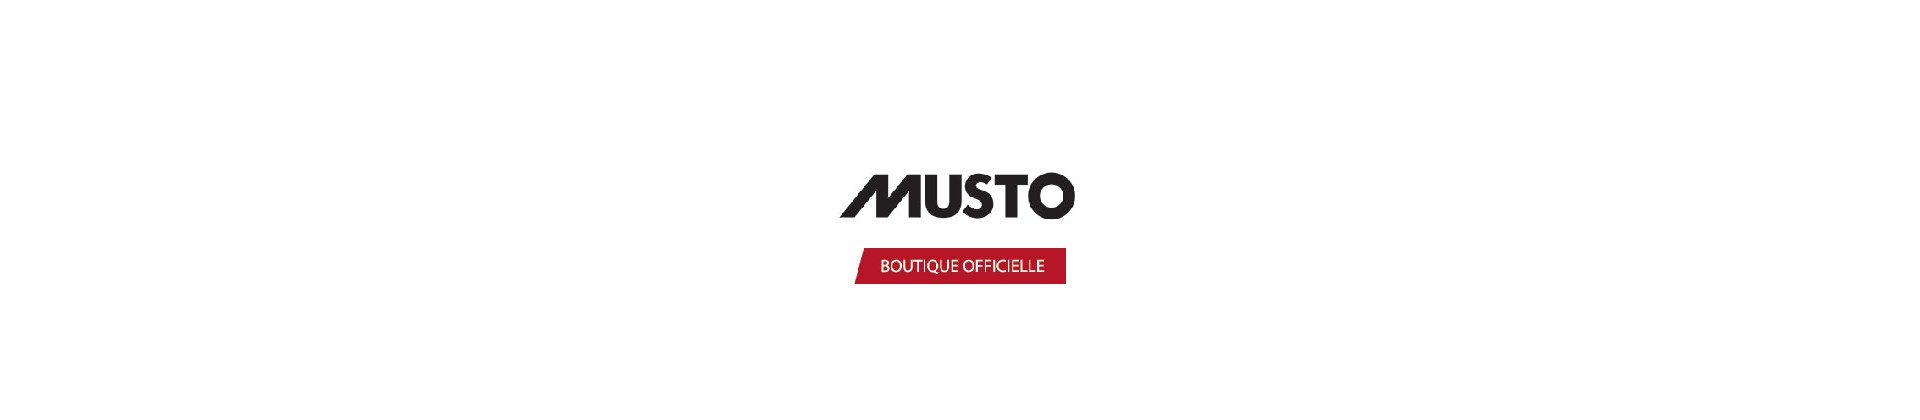 Musto Offshore